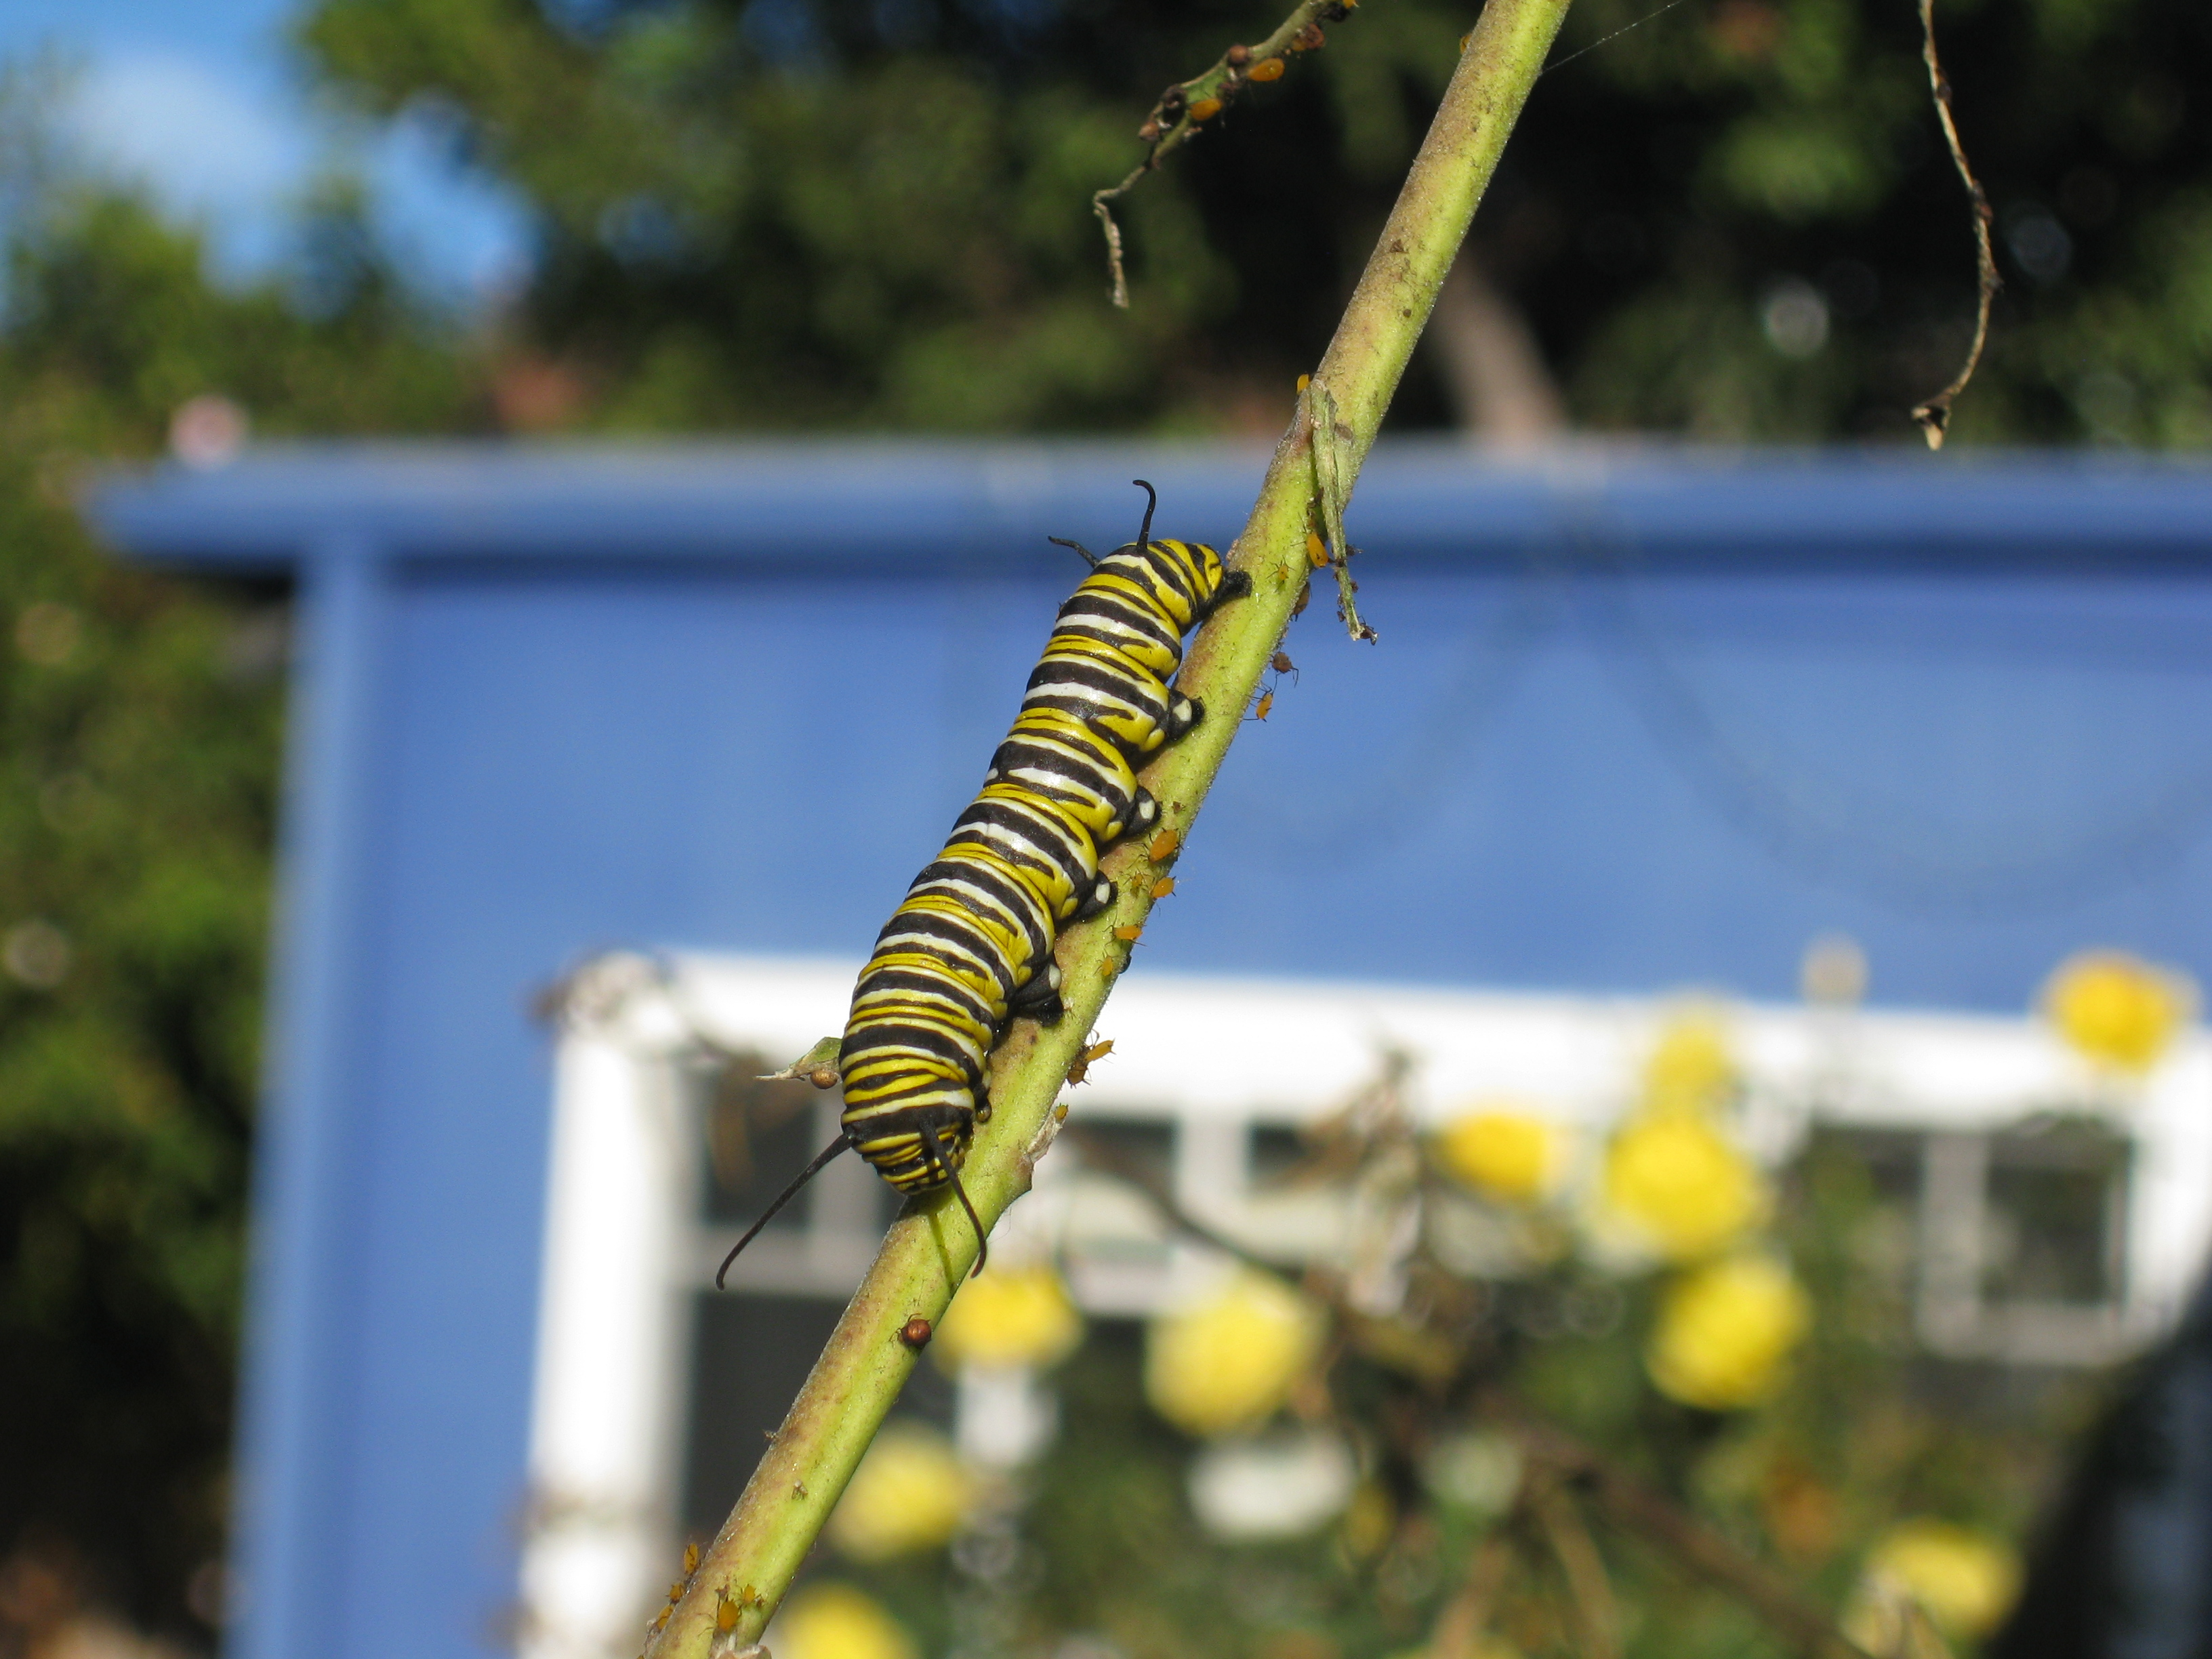 Monarch butterfly caterpillars eat milkweed along their journey.